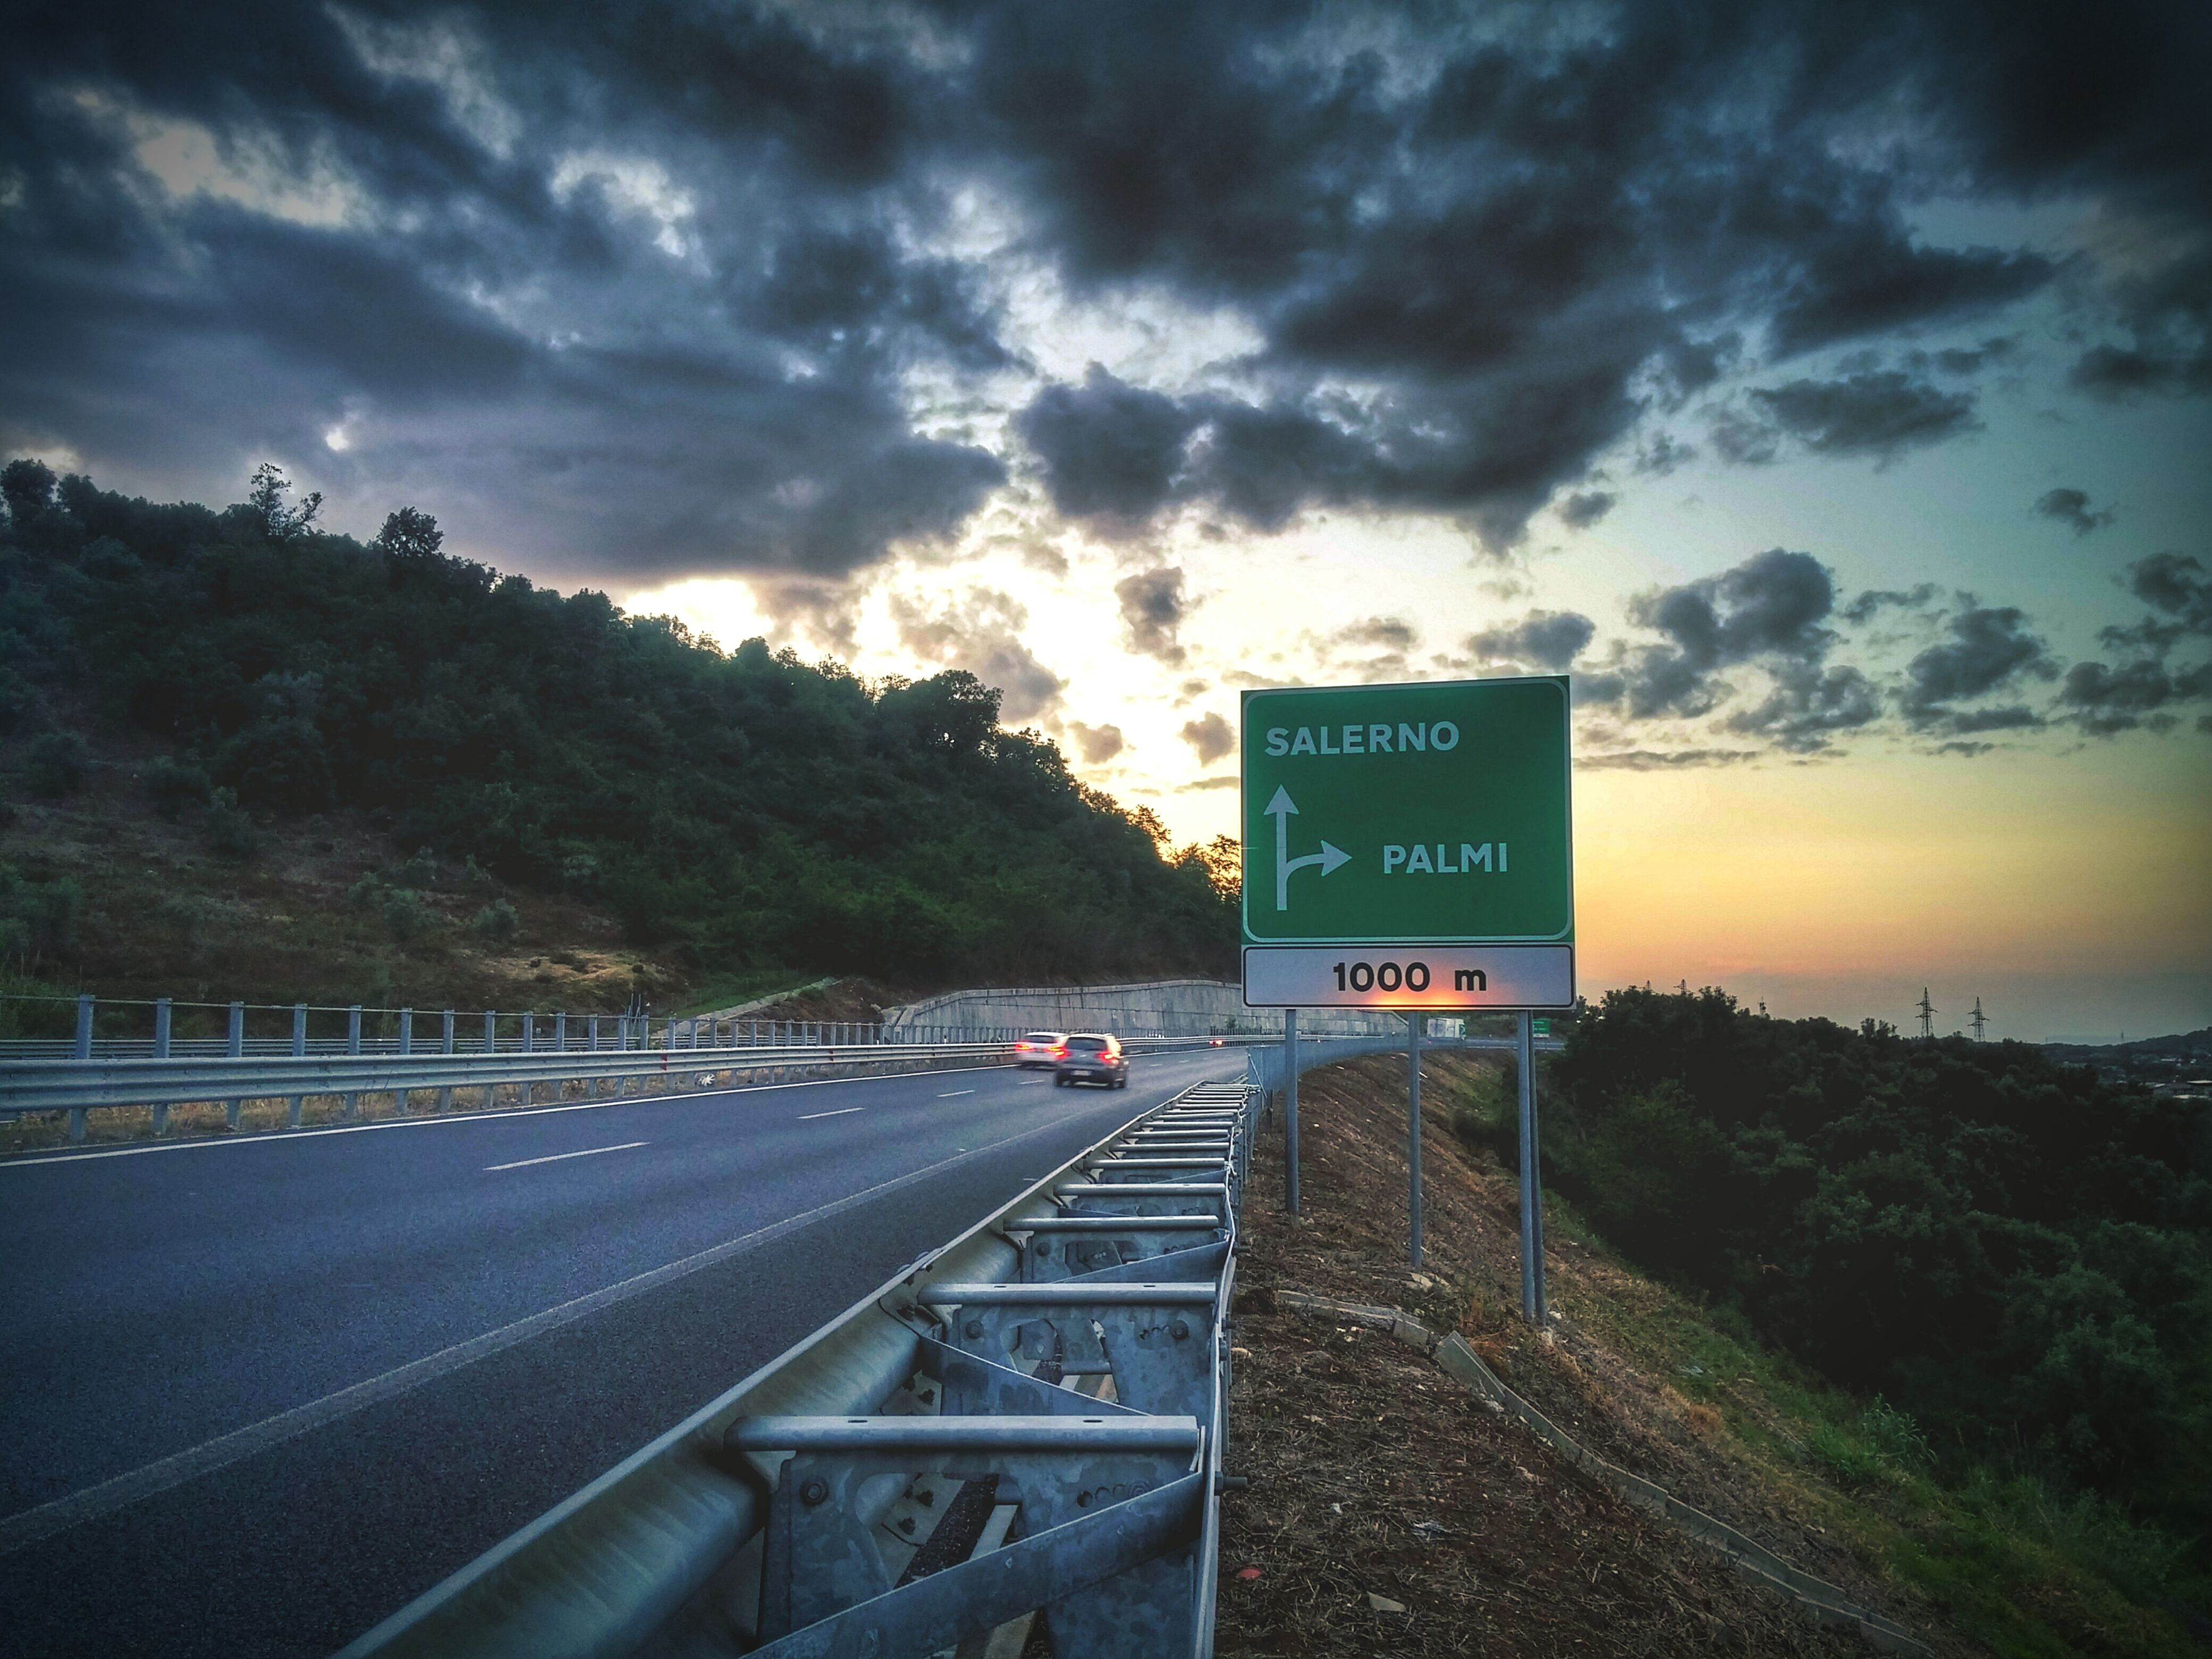 road, cloud - sky, text, communication, sky, transportation, the way forward, guidance, dramatic sky, road sign, tree, direction, sunset, travel, outdoors, no people, storm cloud, mountain, day, nature